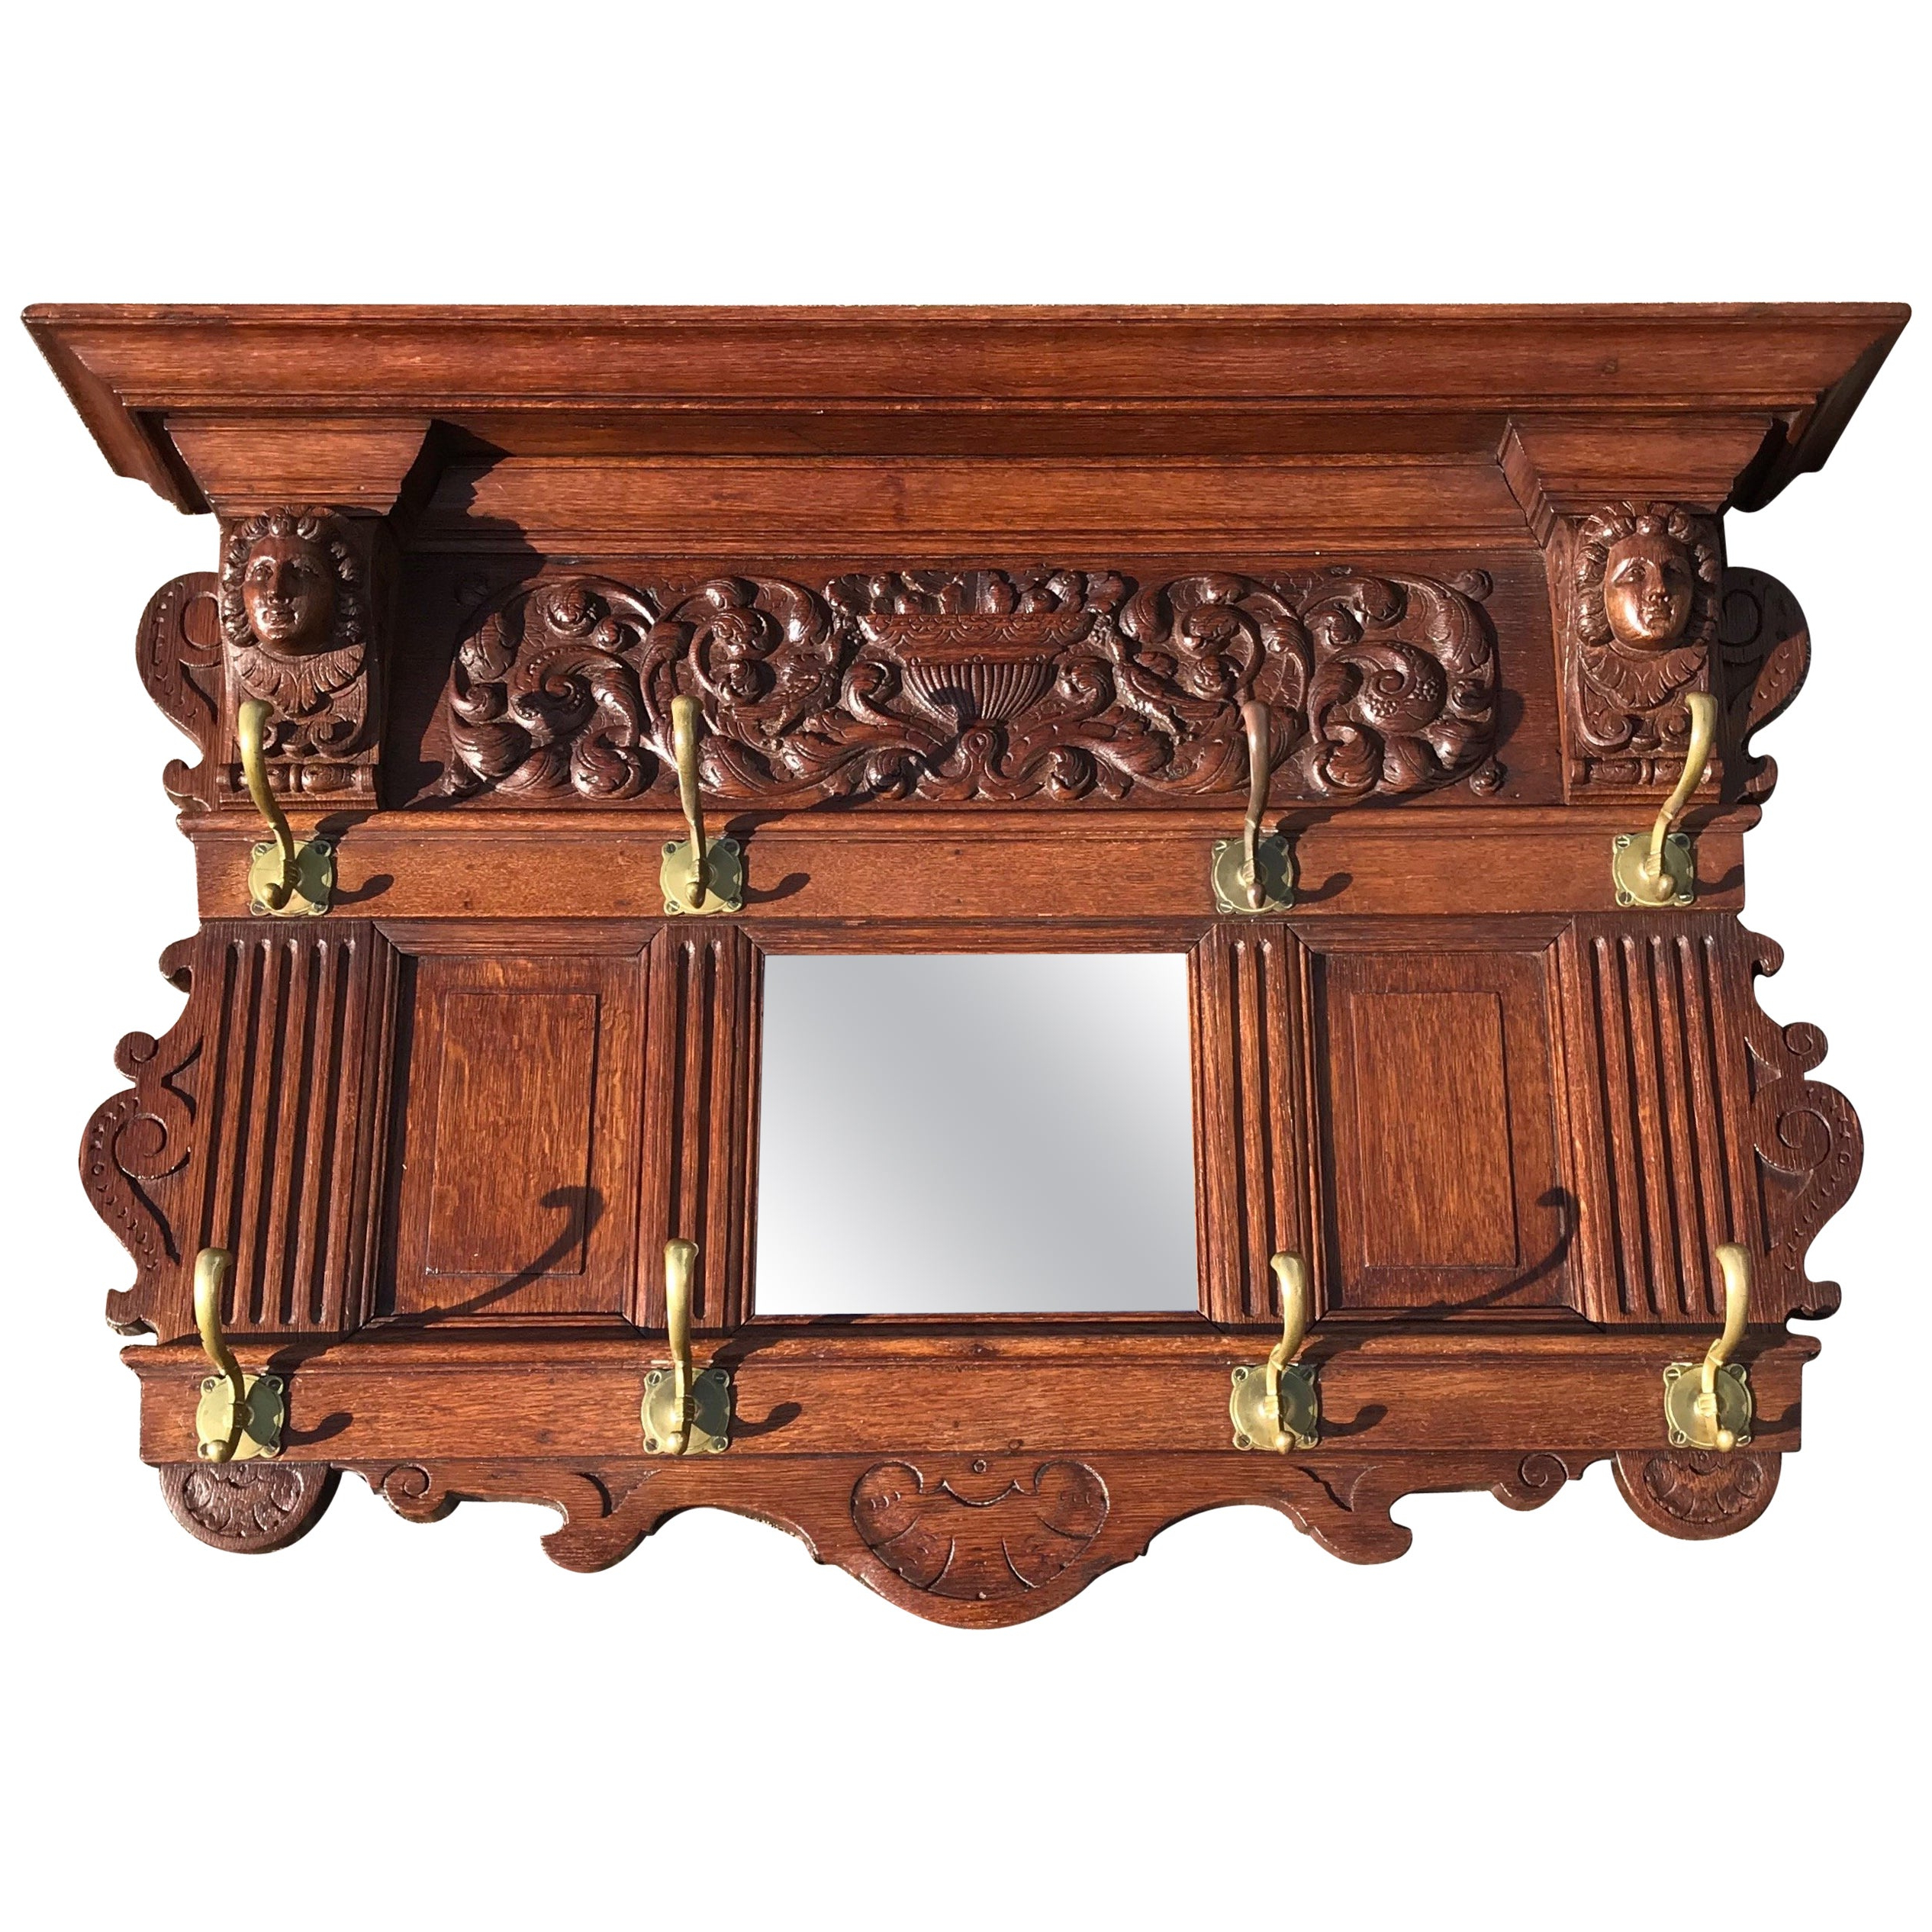 Antique Hand Carved Neoclassical Revival Oak Wall Coat Rack With Mirror In Popular Coat Rack Wall Mirrors (View 14 of 20)